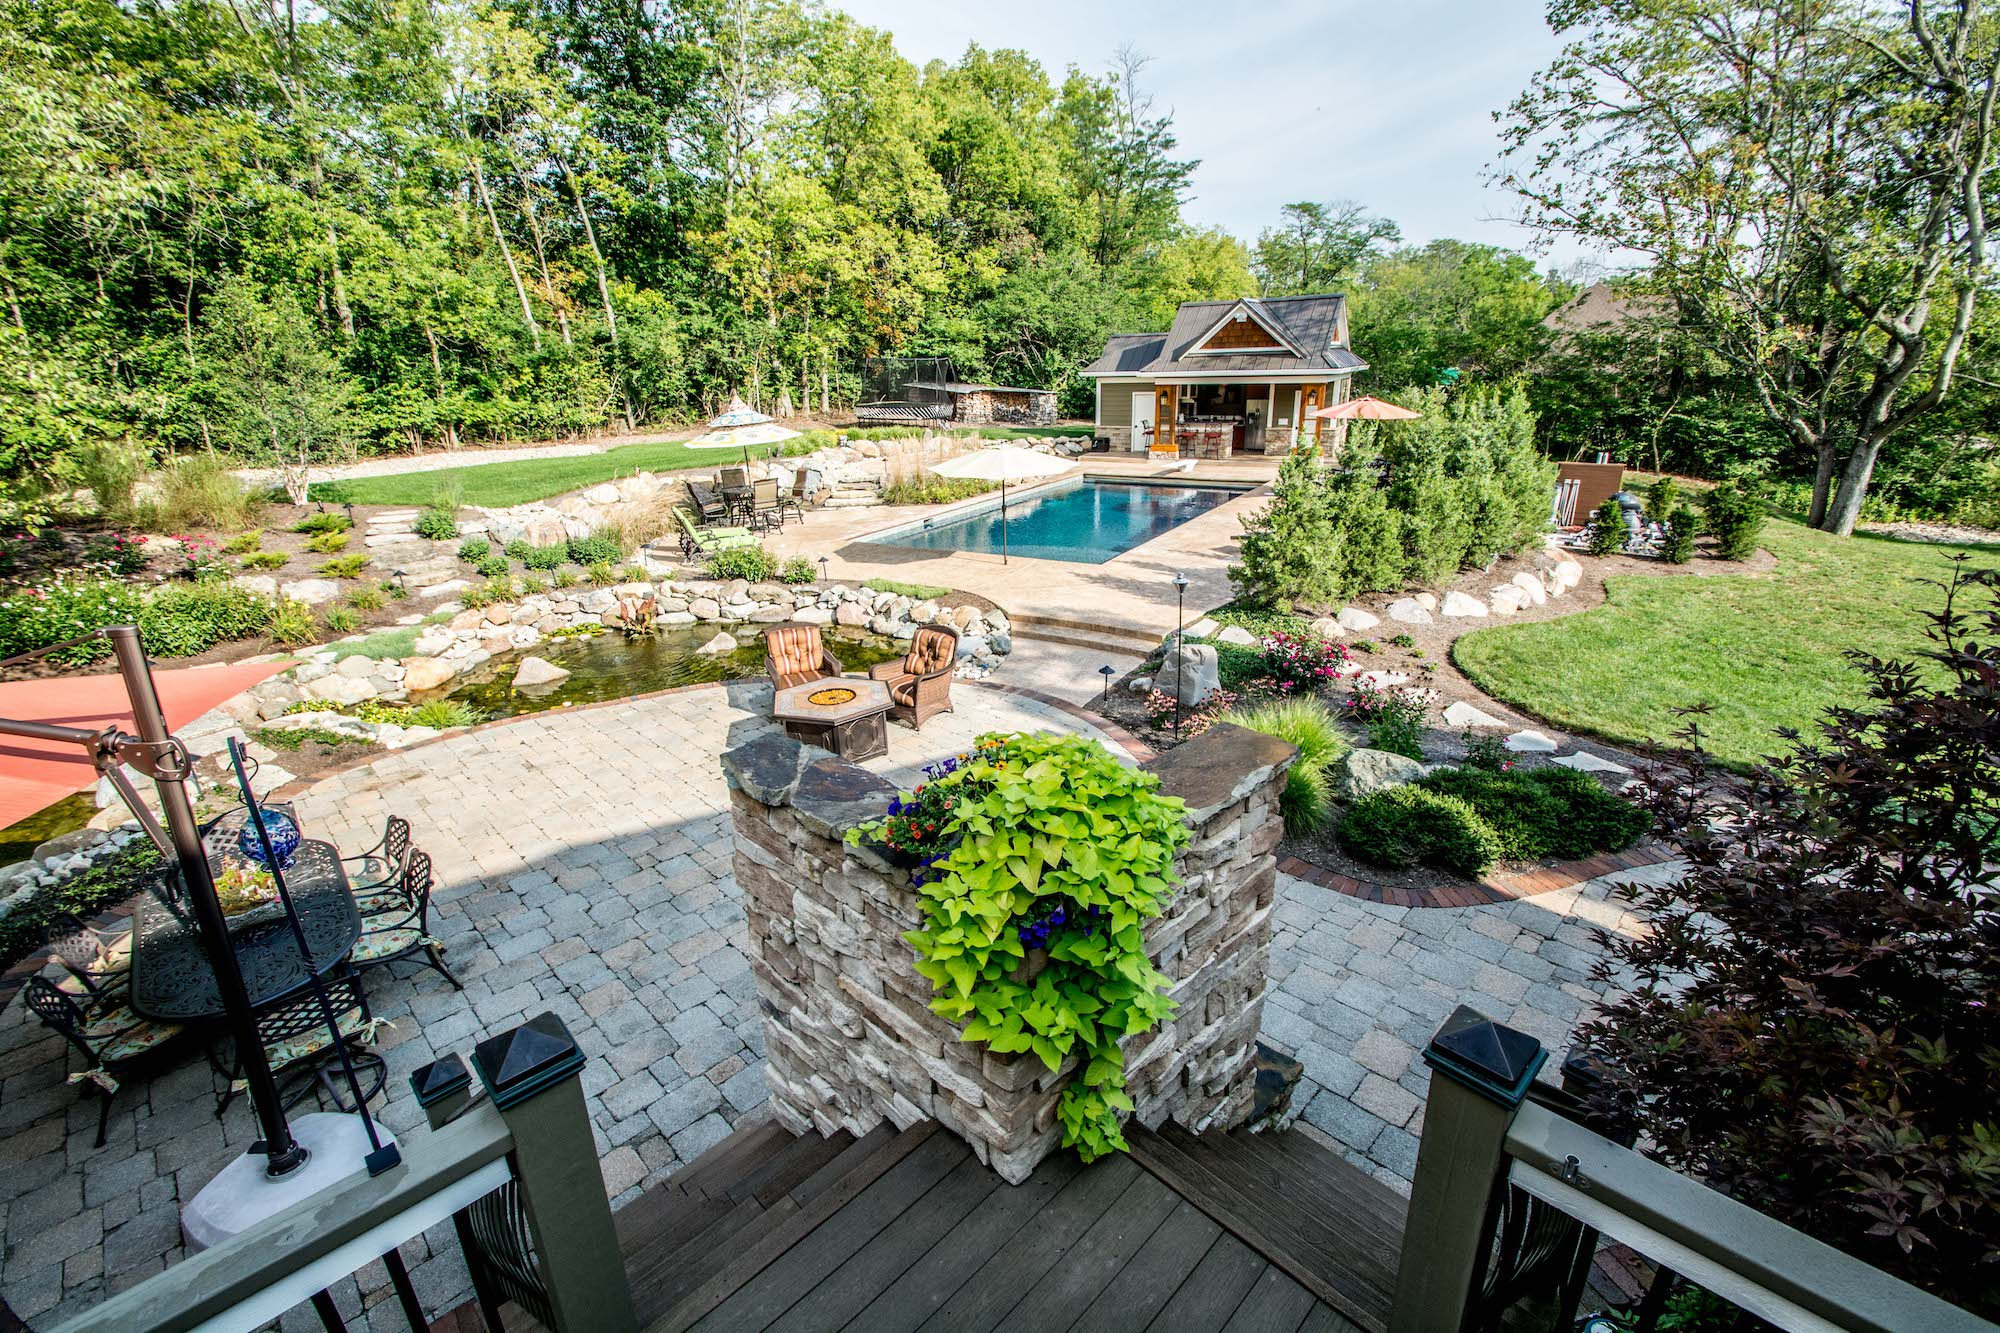 A Grunder Landscaping Co. project in Dayton, OH.